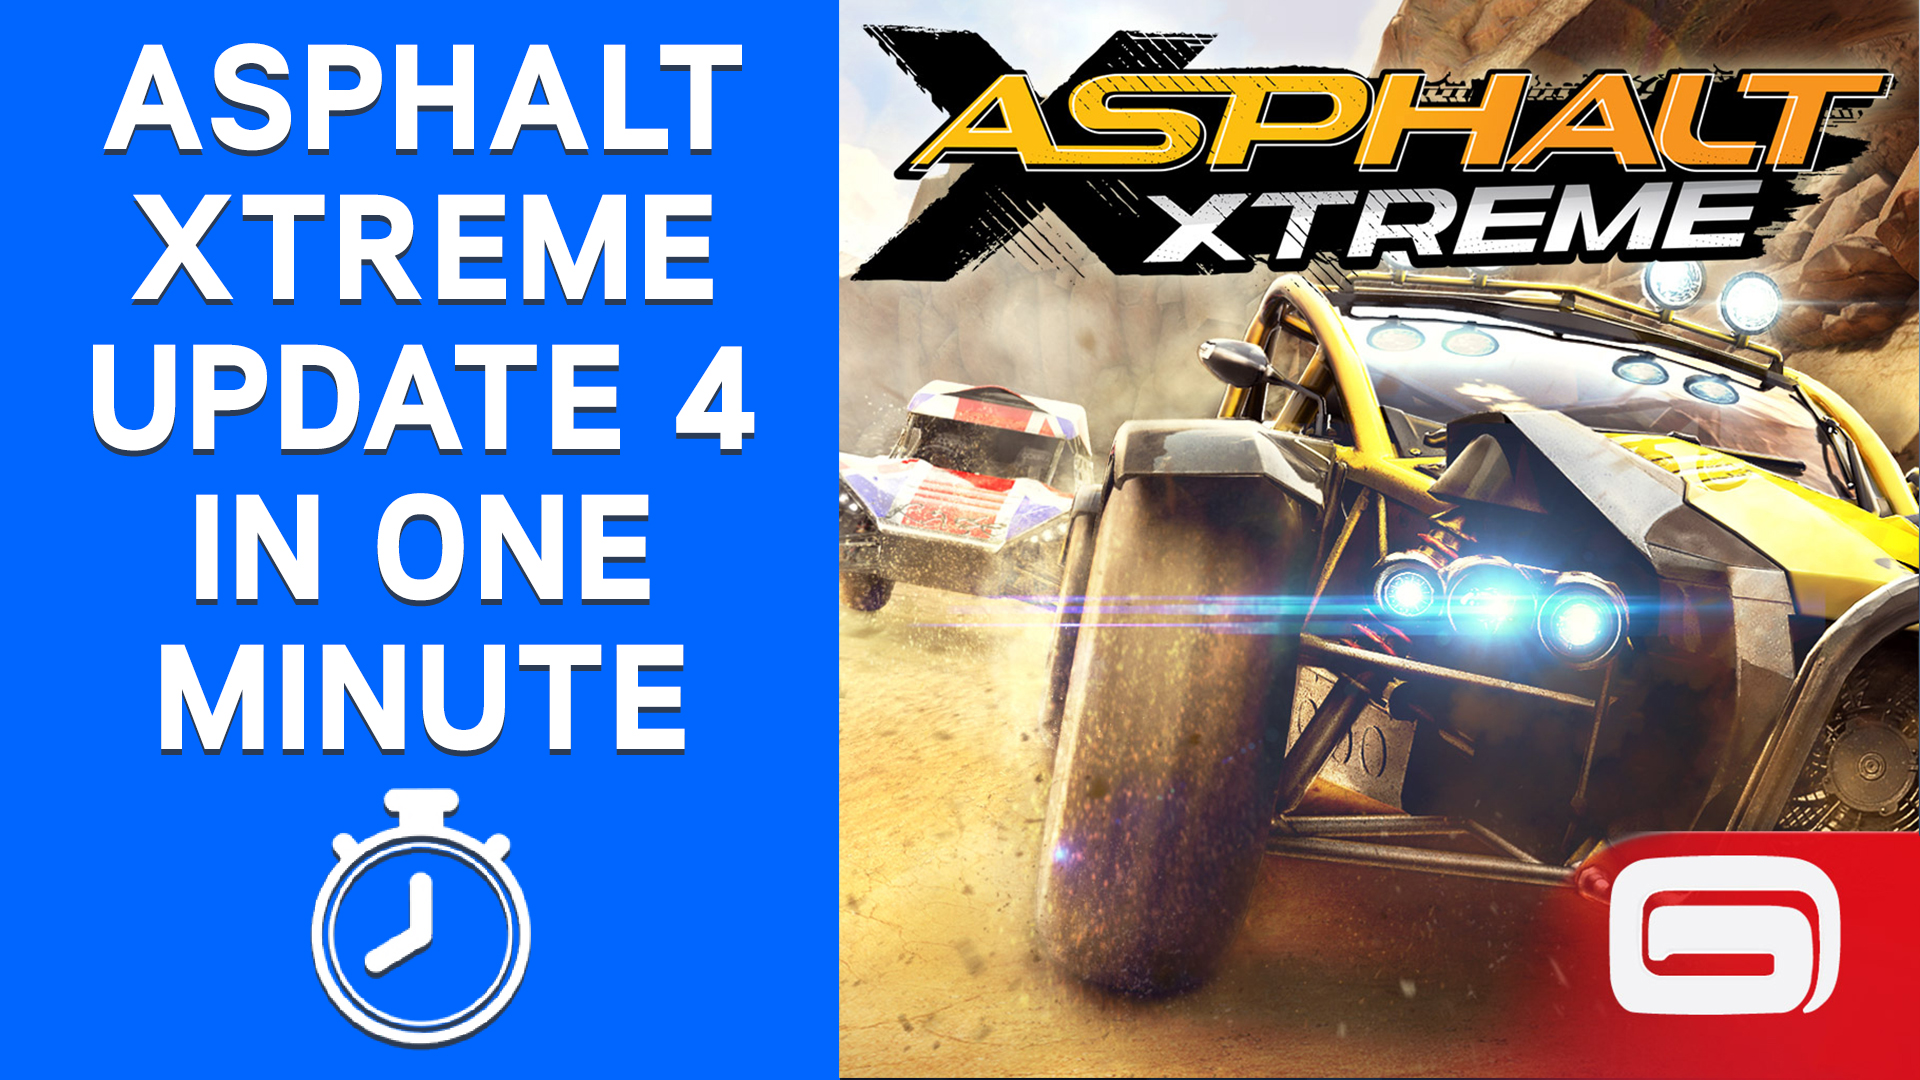 Asphalt Xtreme Update 4 in One Minute